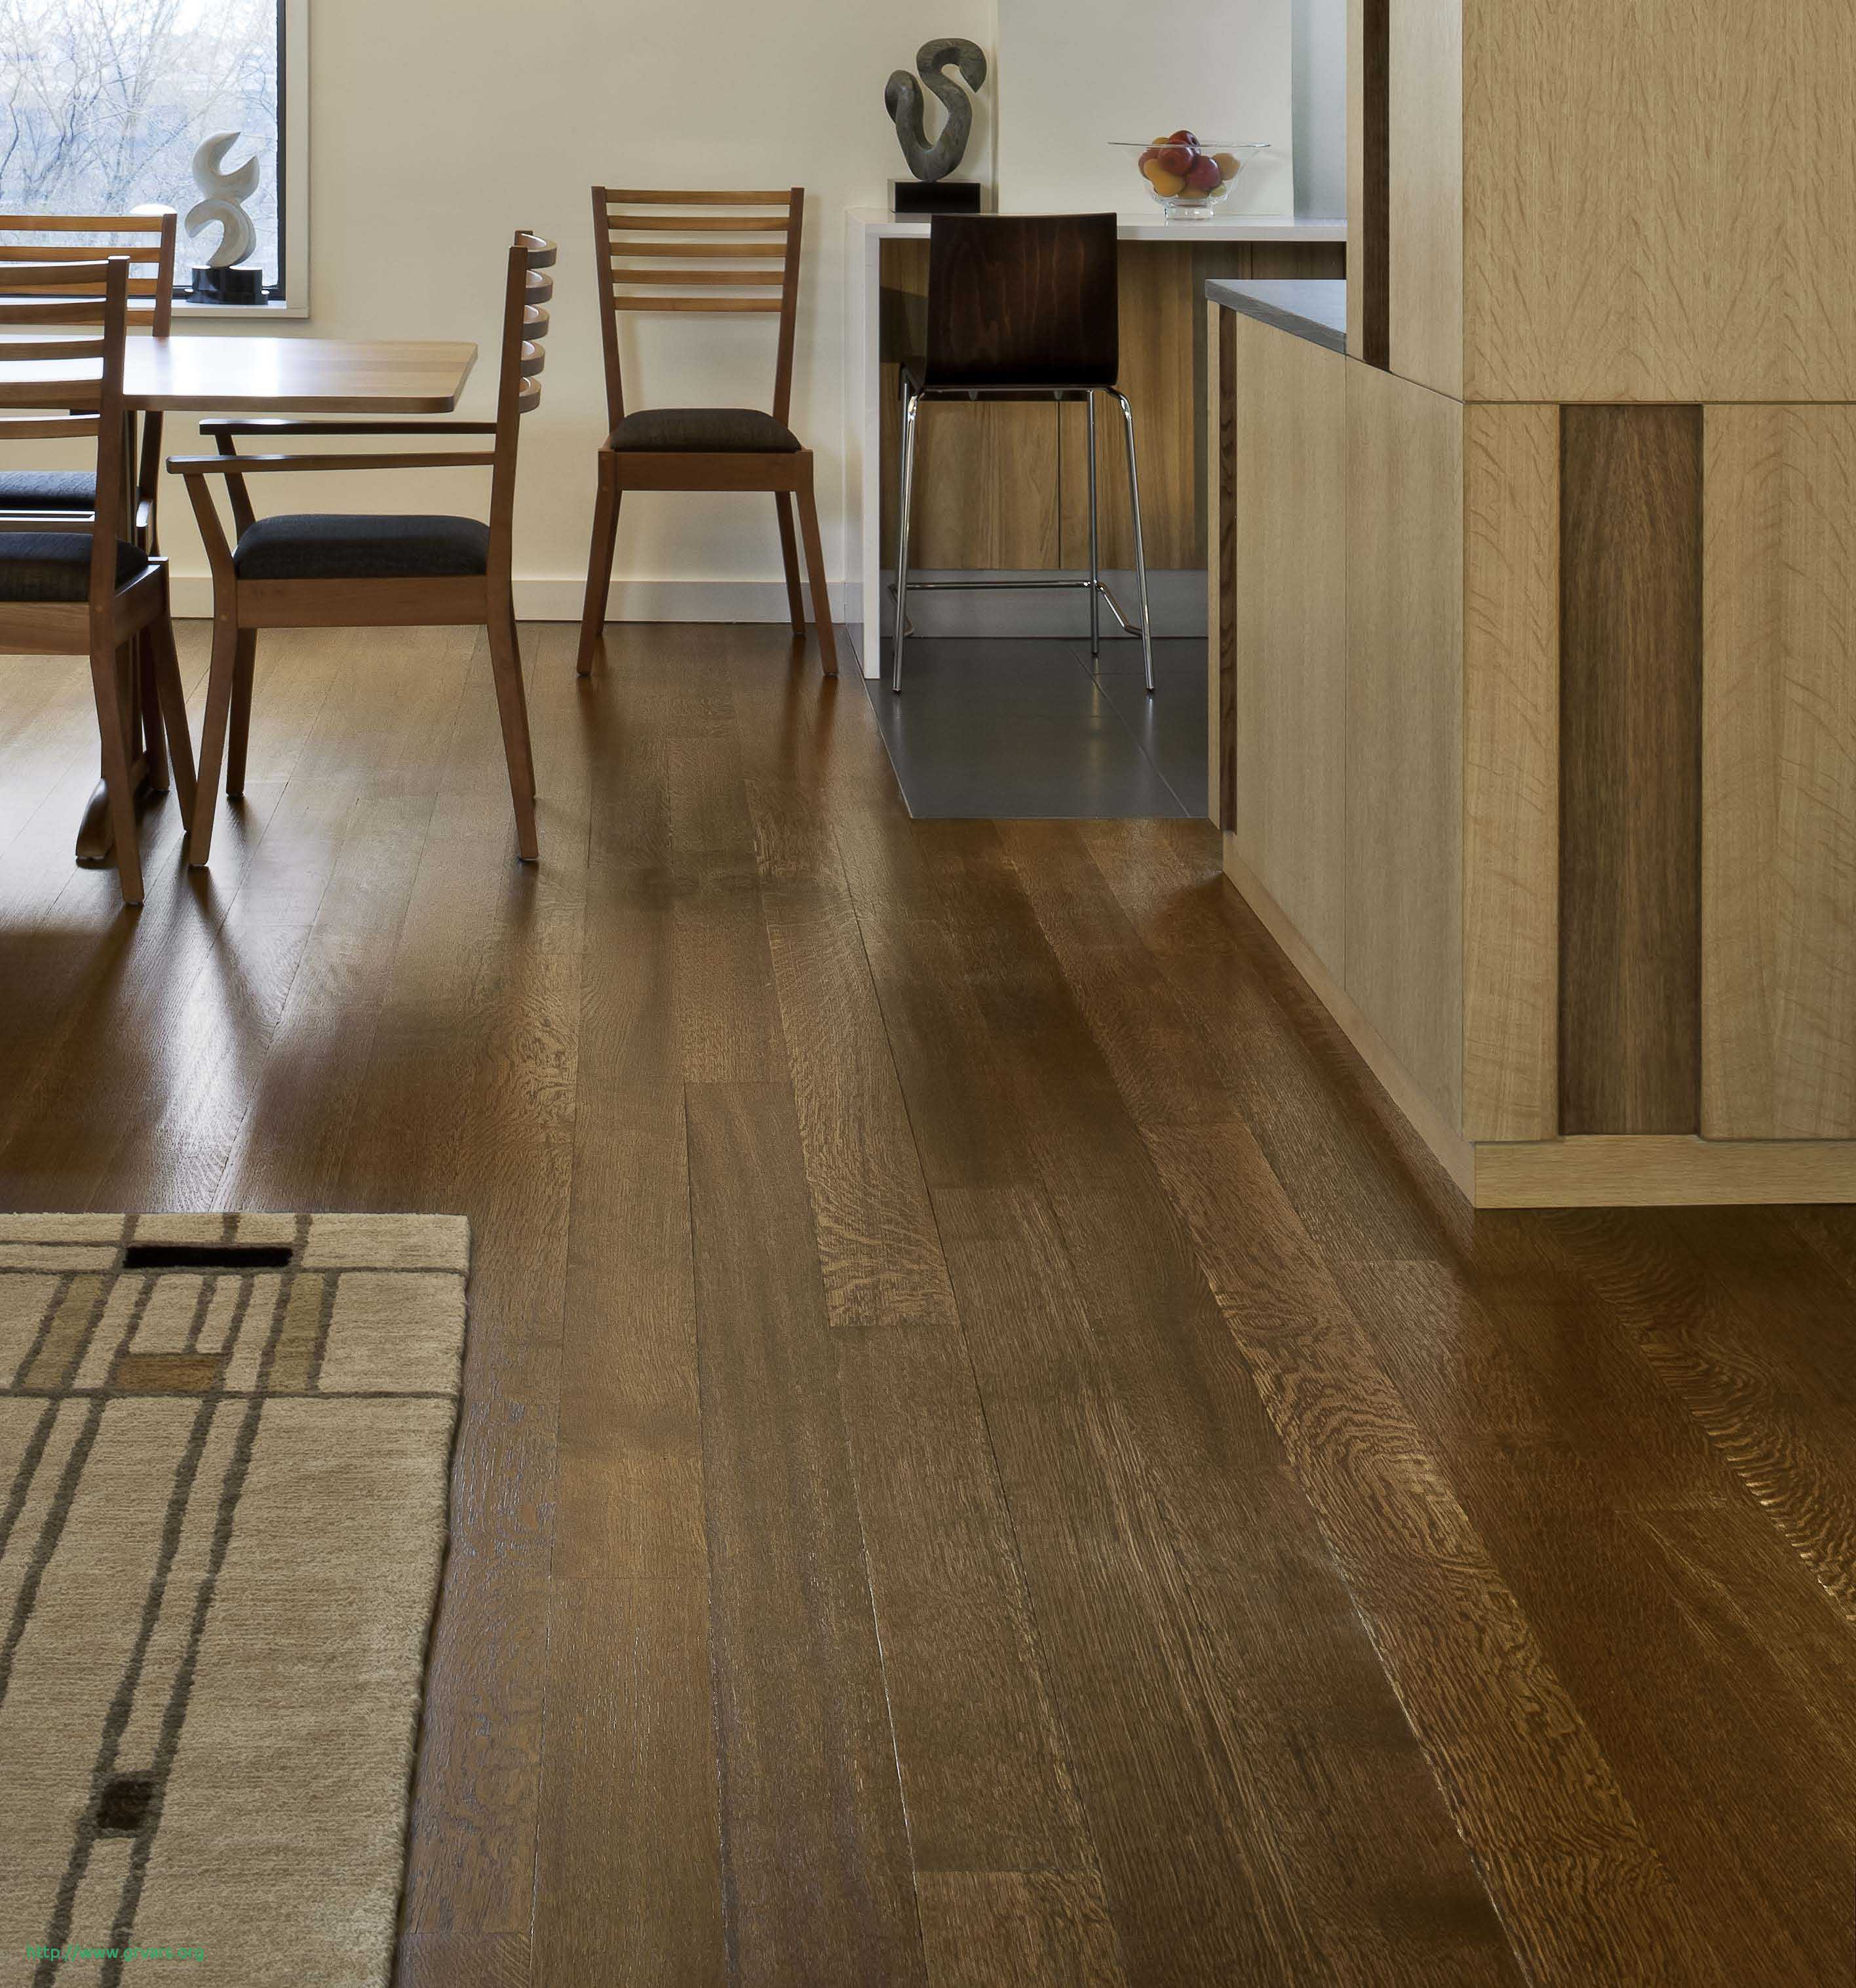 hardwood floor alternatives of 21 luxe how to disinfect hardwood floors naturally ideas blog with how to disinfect hardwood floors naturally charmant beautiful discount hardwood flooring 15 steam clean floors best